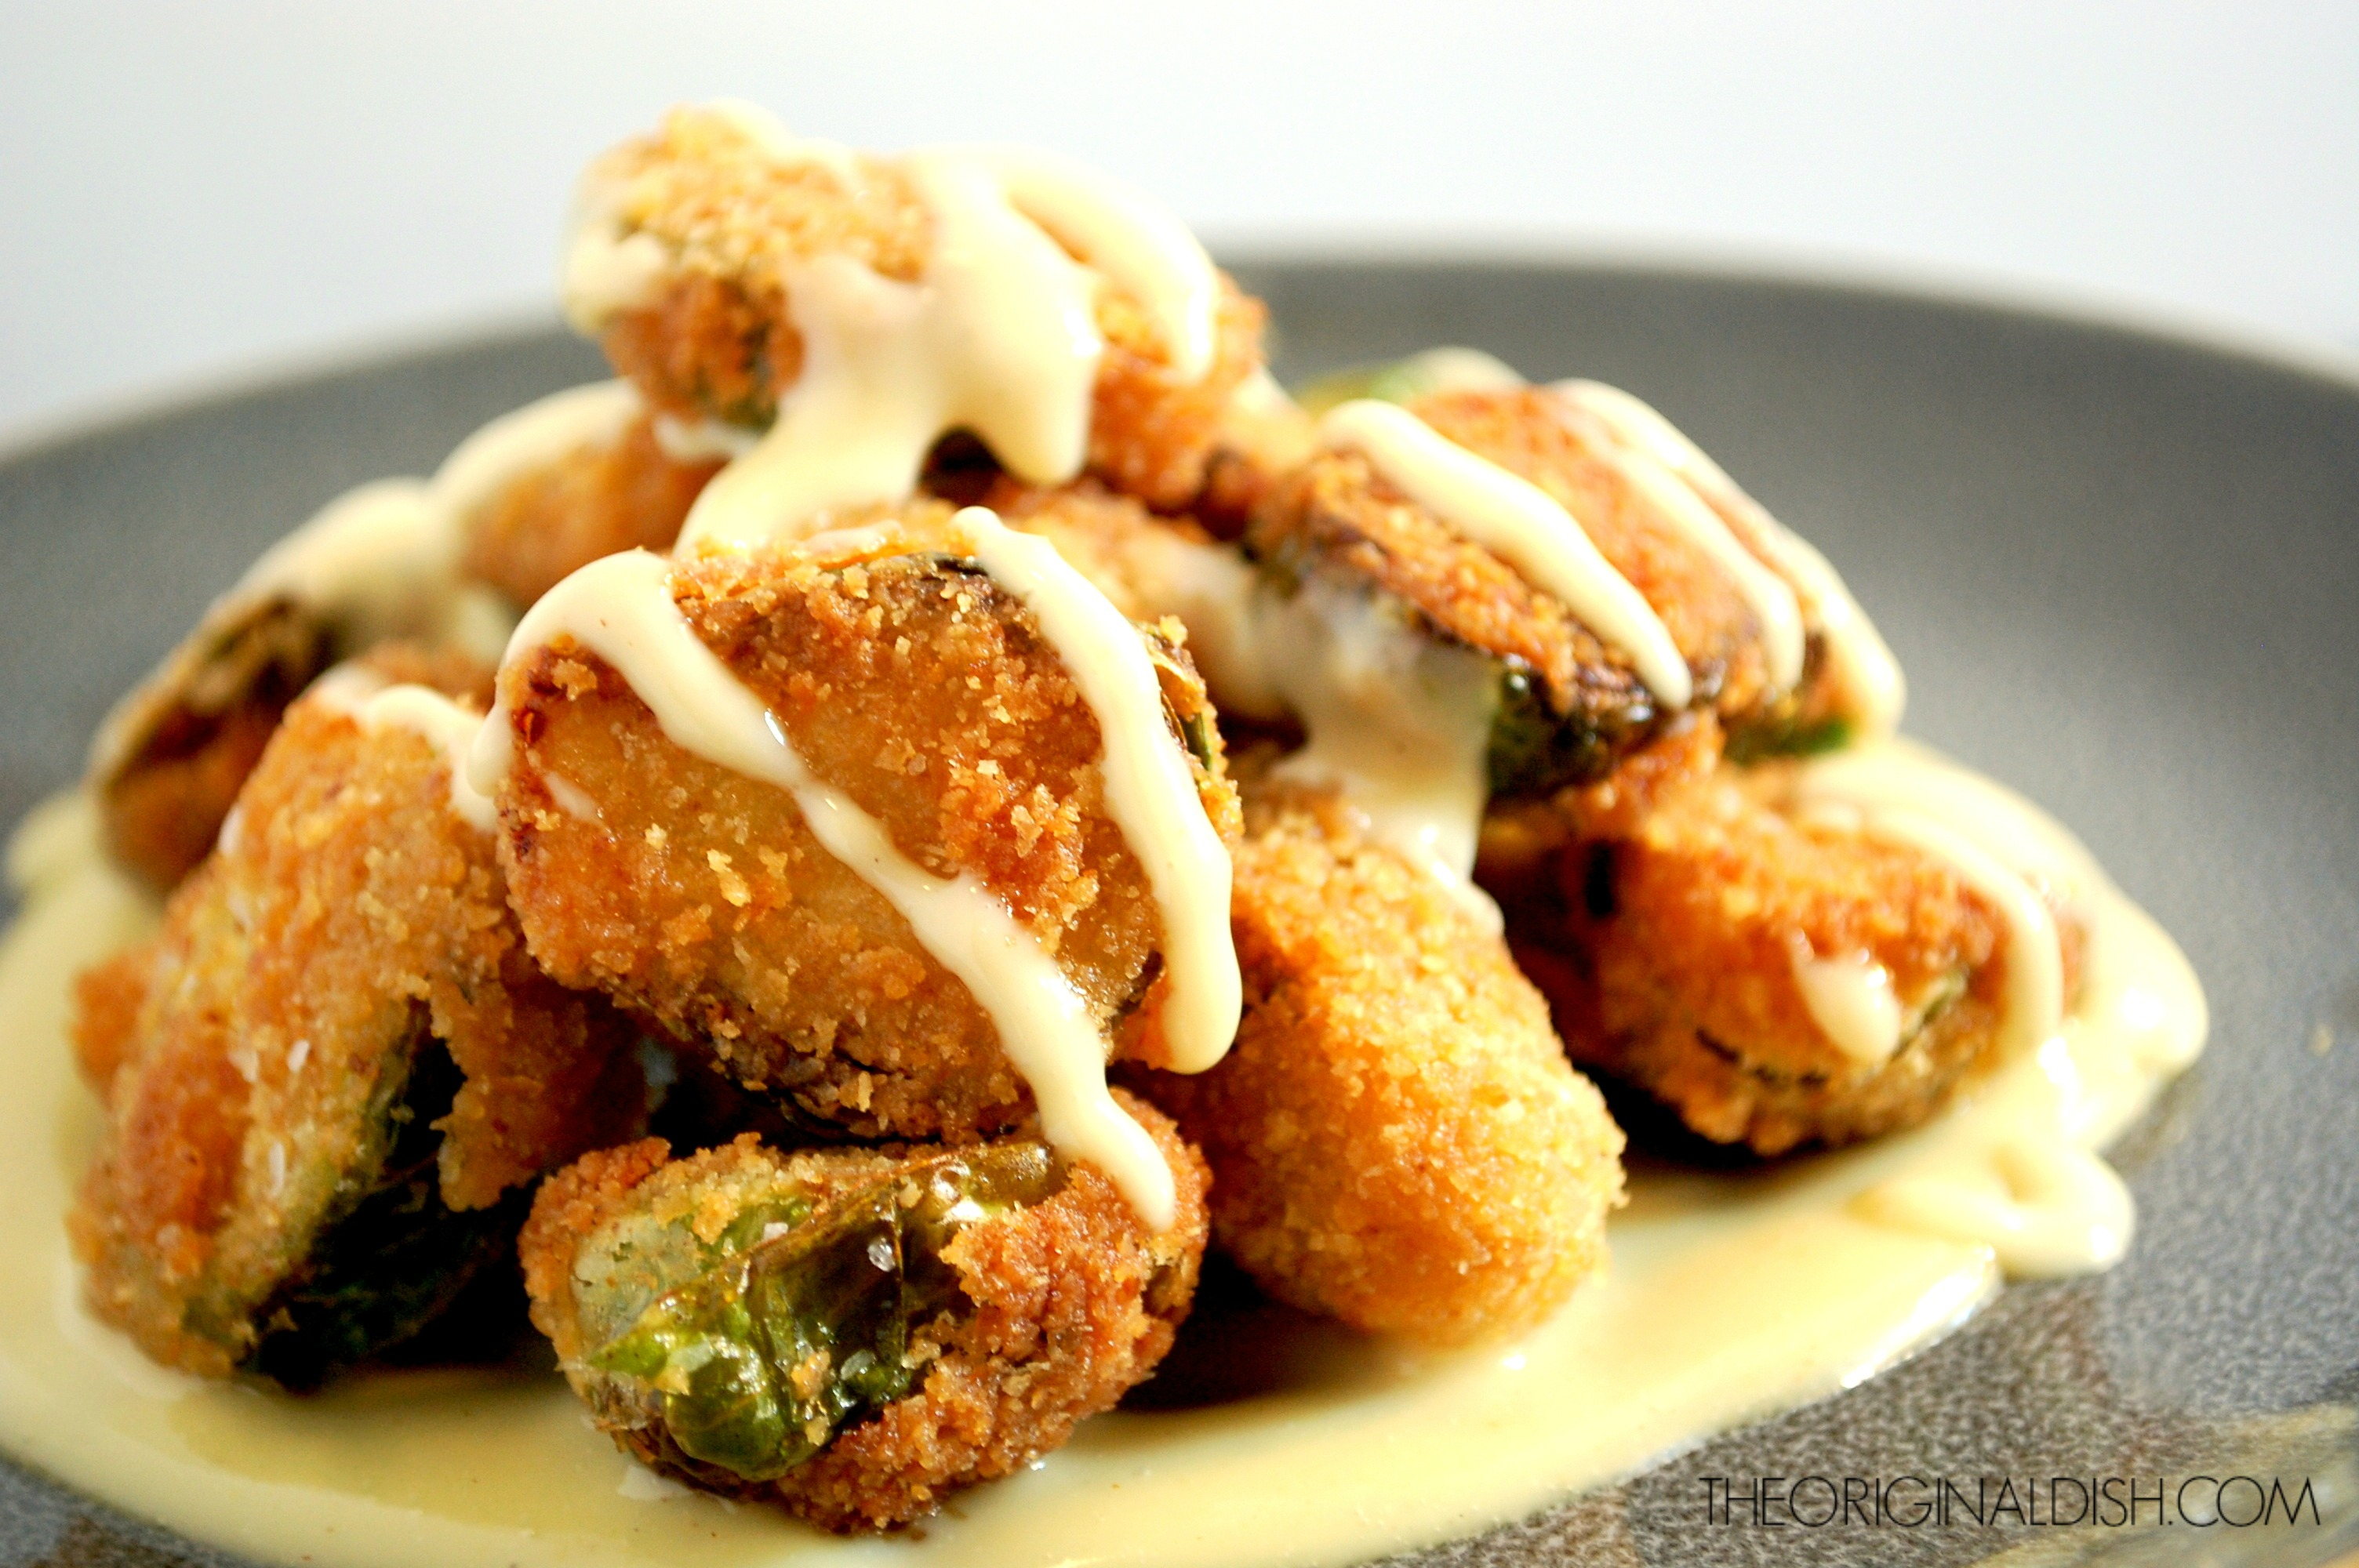 Fried Brussels Sprouts with Maple-Dijon Mayo | The Original Dish